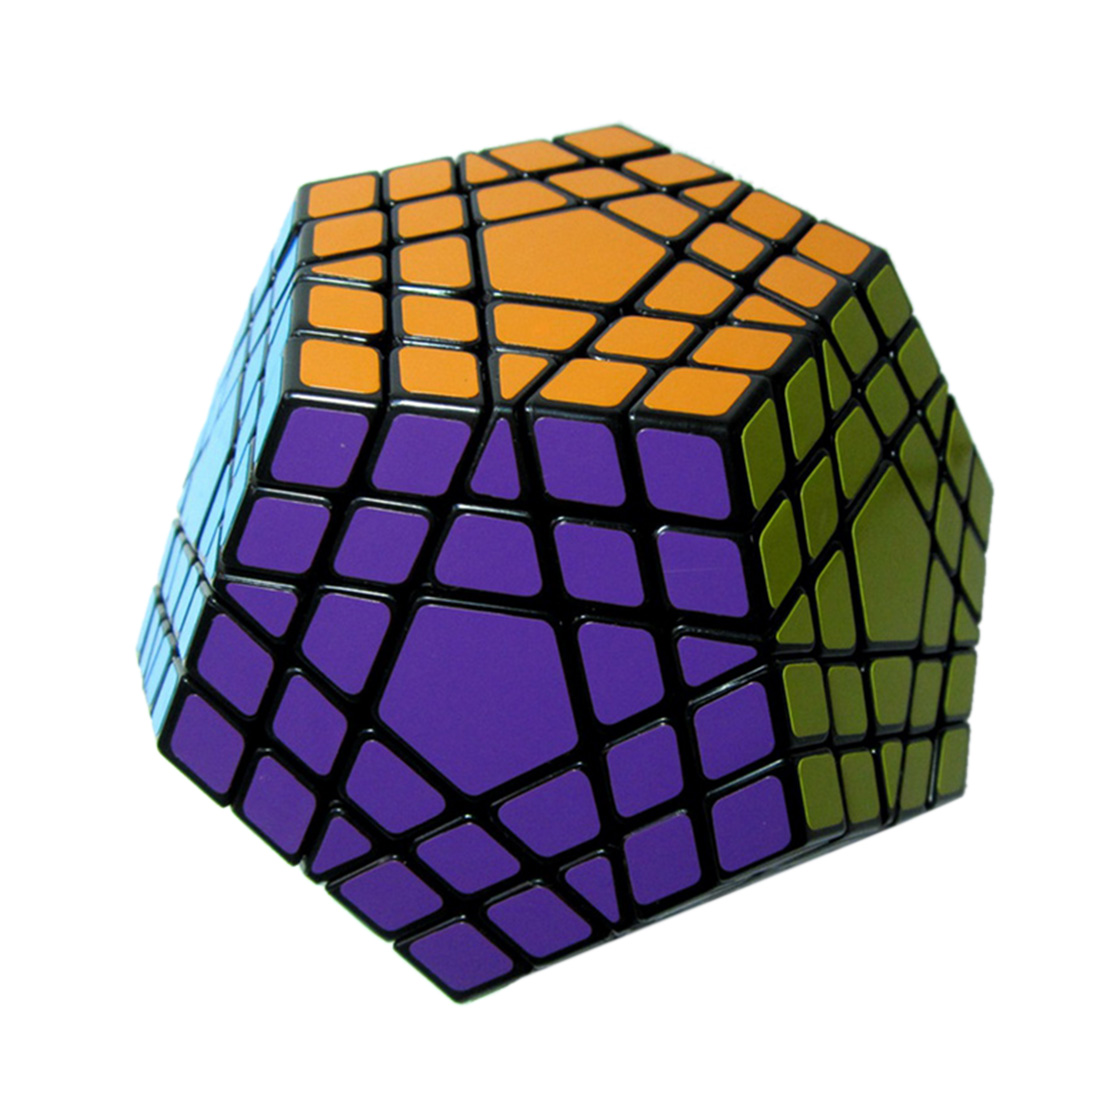 High Quality Dodecahedron 12 Sided Speed Magic Cube 5 Layer Puzzle 5x5 Puzzle Educational Toys For Kids